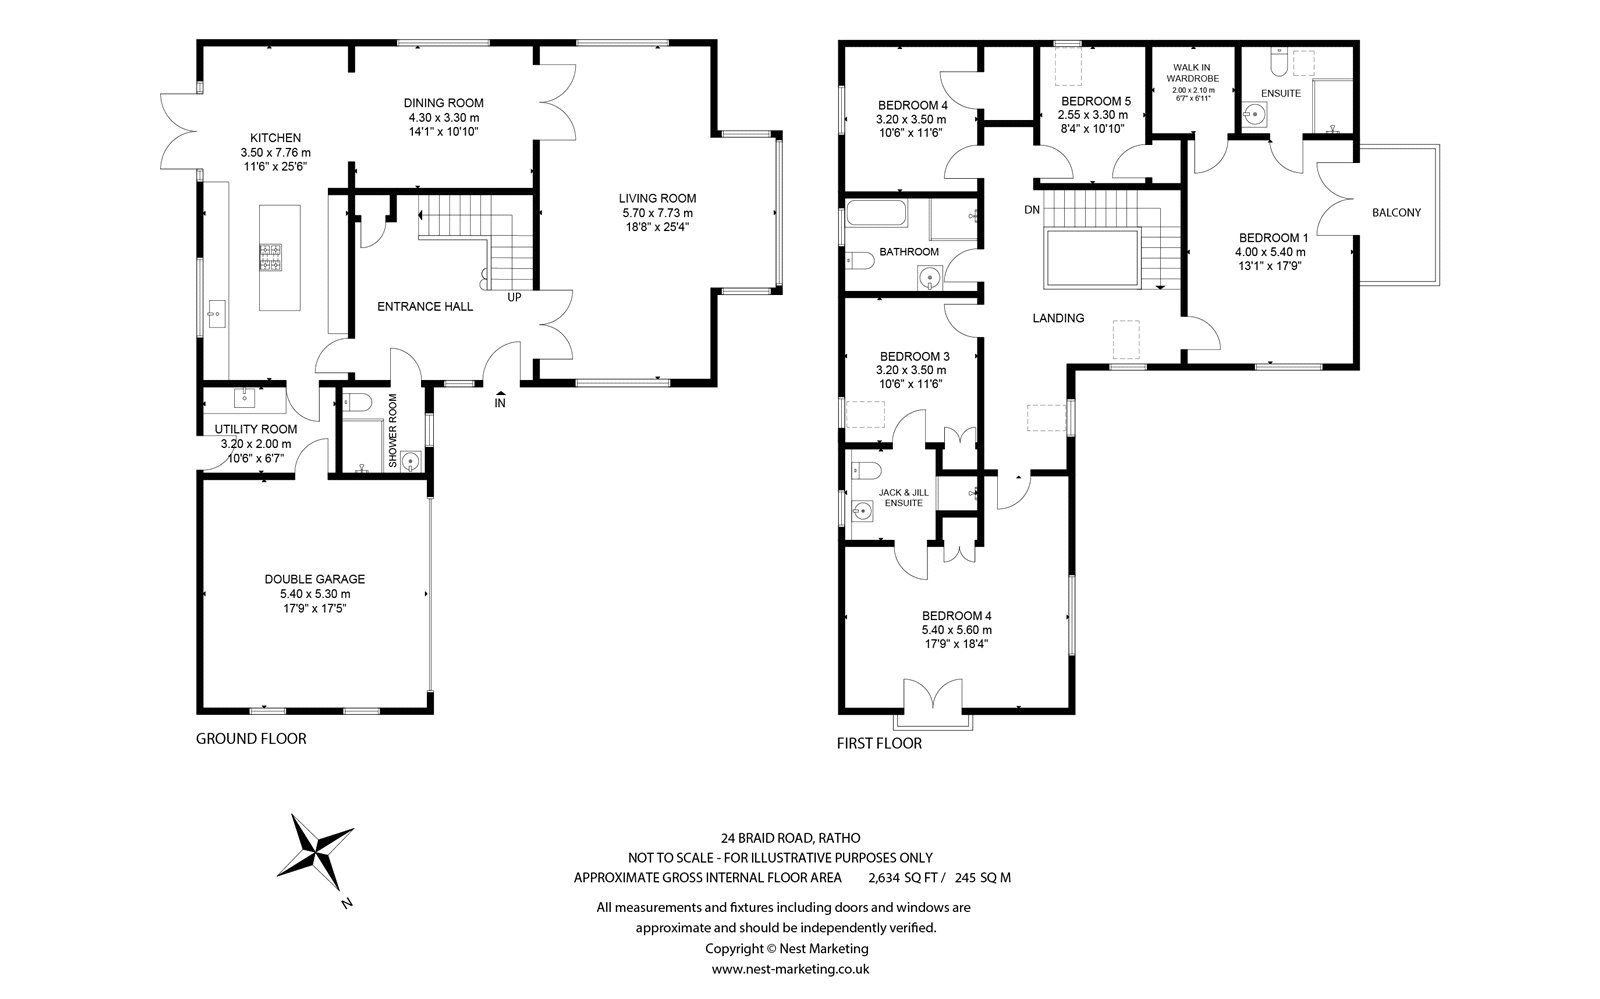 Floorplans for Marina View House, 24 Baird Road, Ratho, EH28